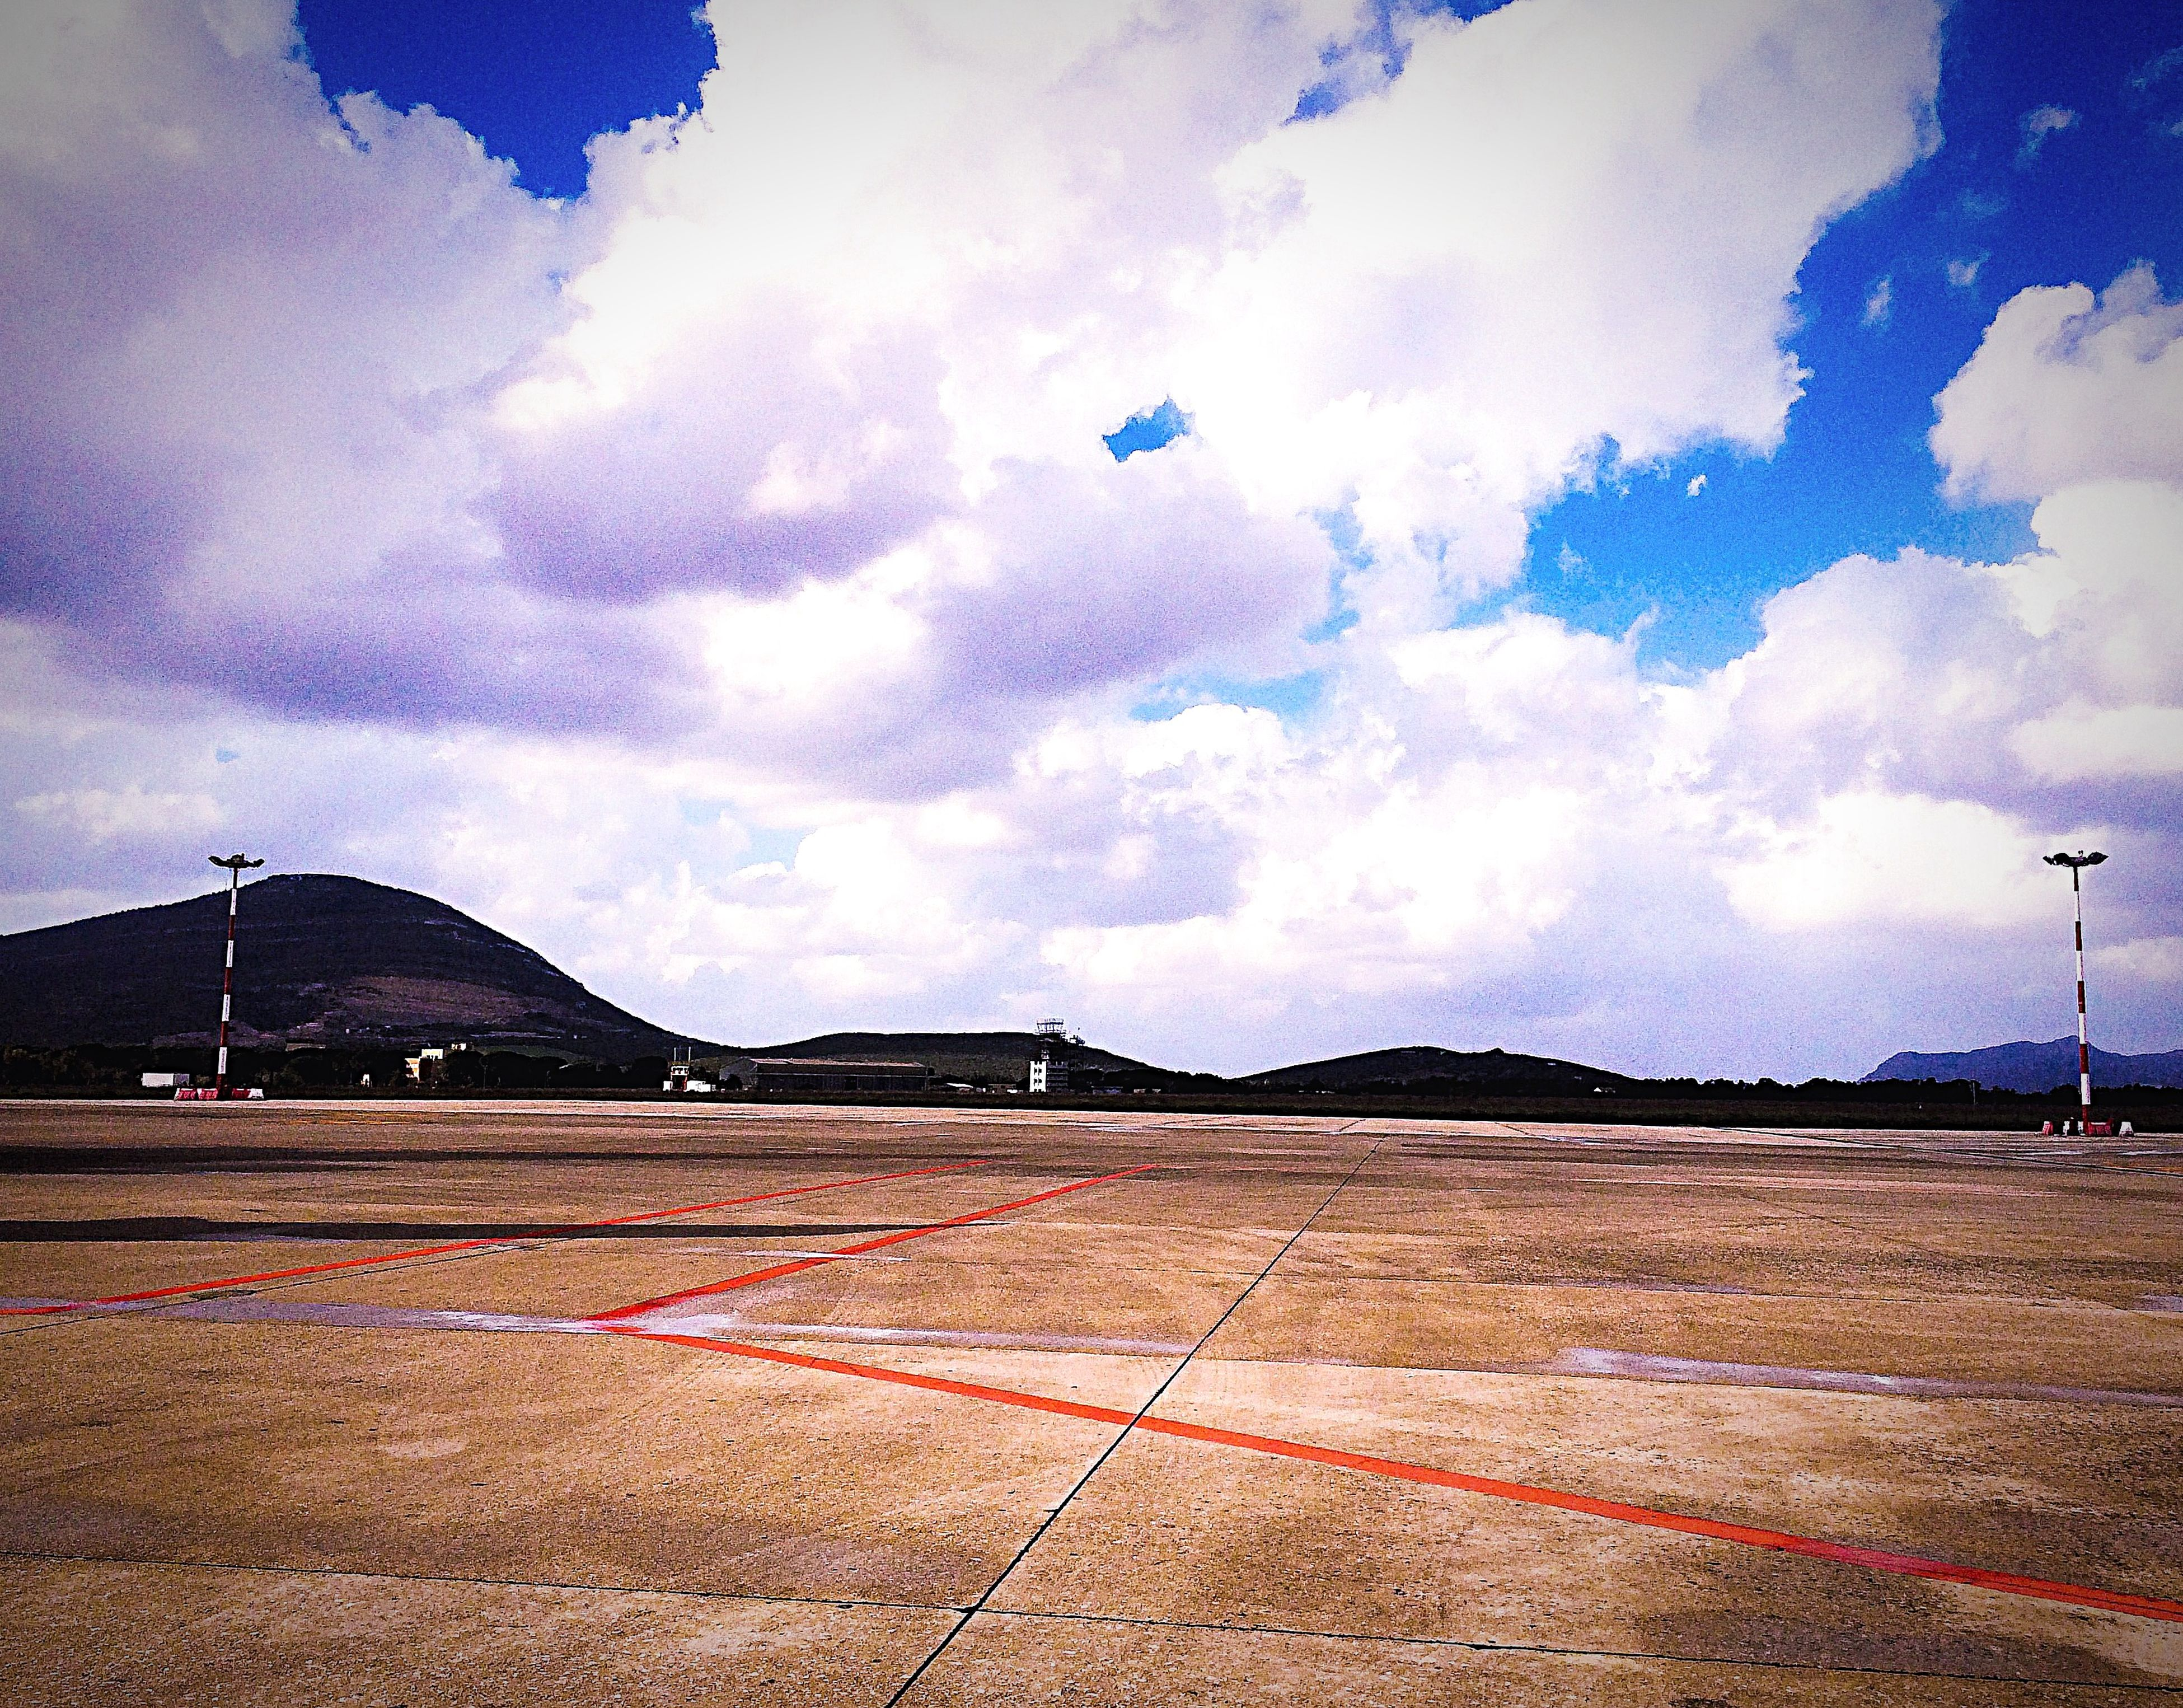 Airports. Traveling EyeEm Best Shots Photo Of The Day Pictureoftheday Photography Picoftheday EyeEmbestshots IPhoneography VSCO Cam Sardegna